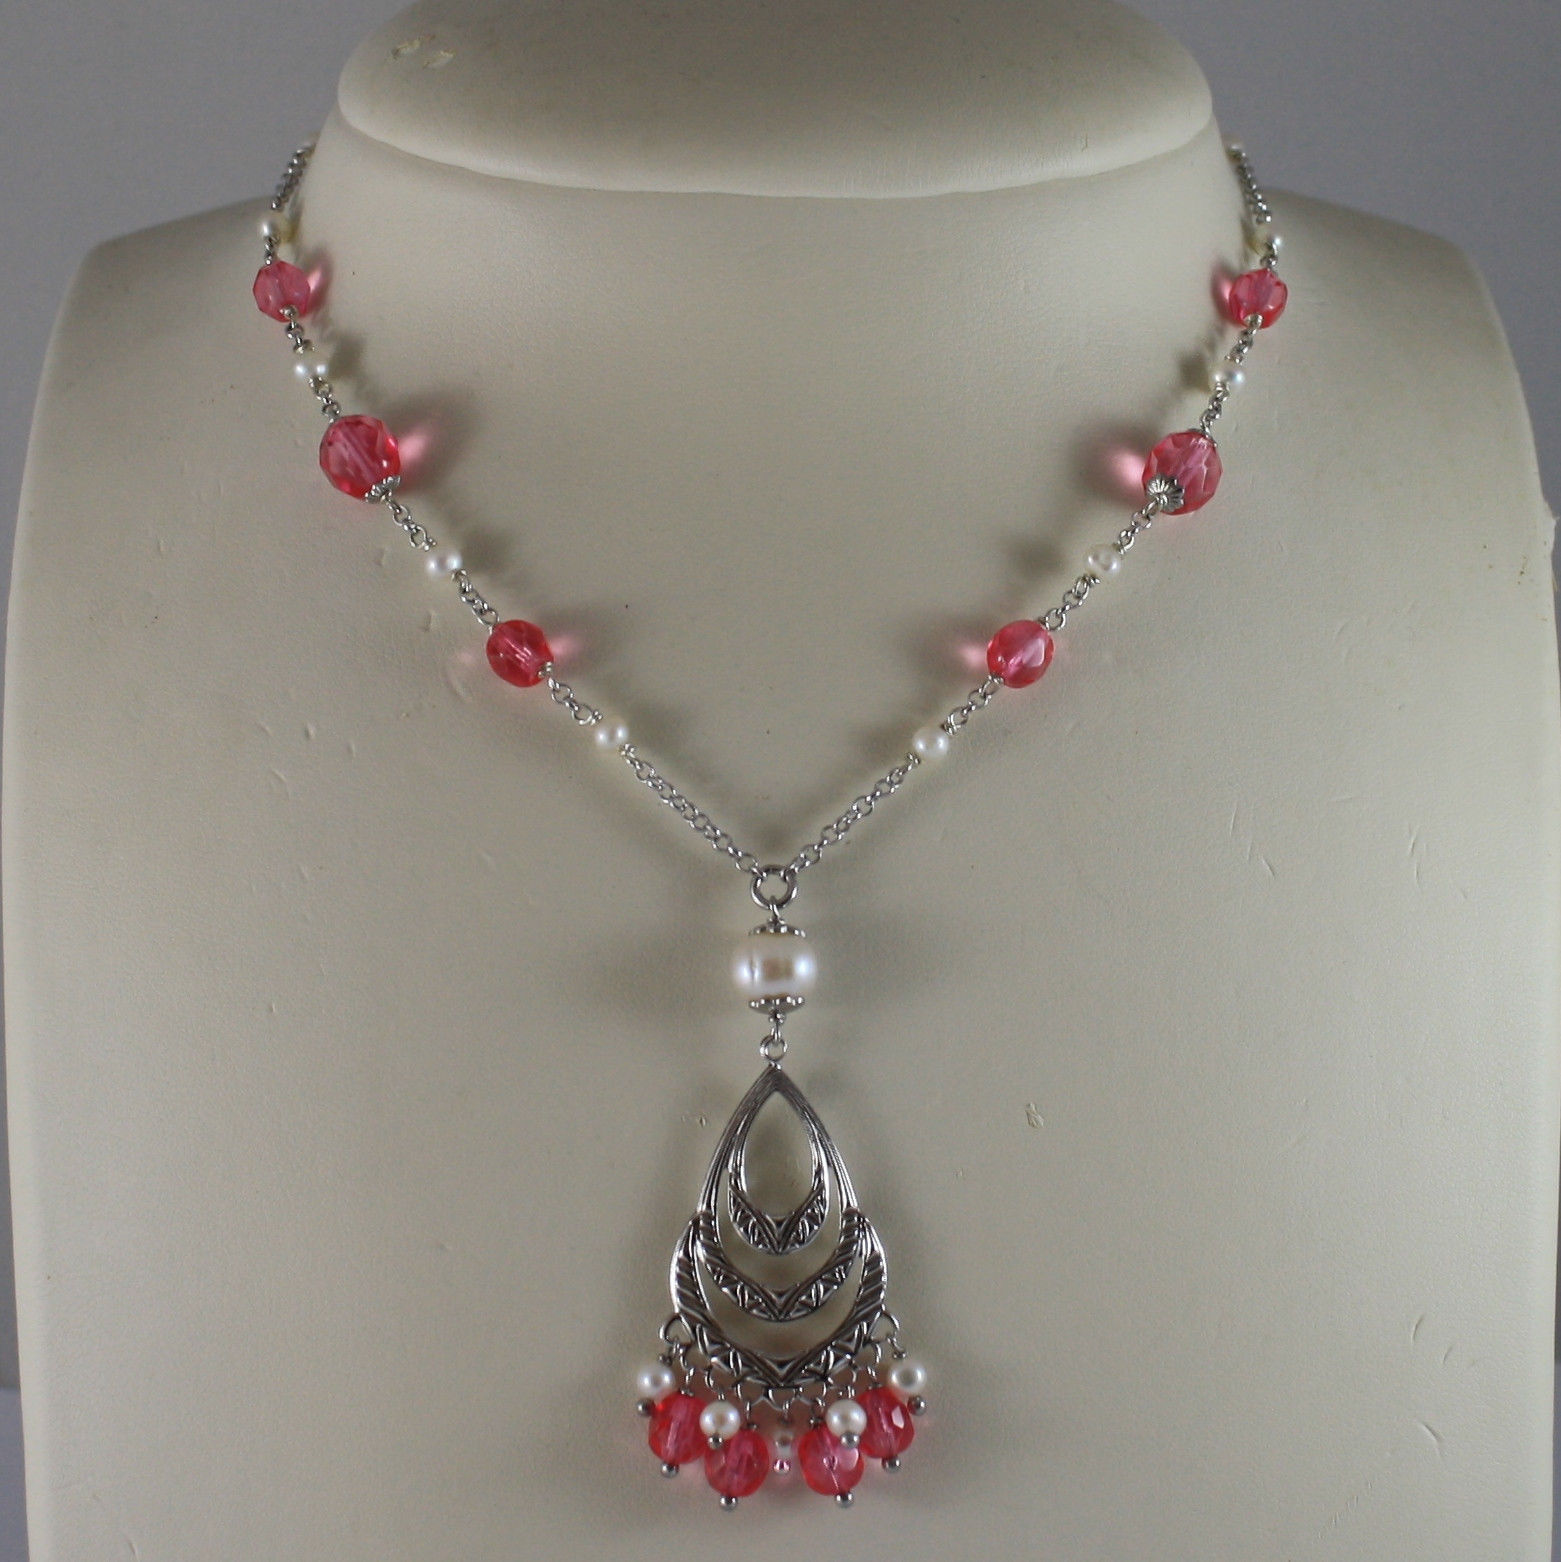 .925 SILVER RHODIUM NECKLACE WITH FUCHSIA CRYSTALS AND SMALL WHITE PEARLS